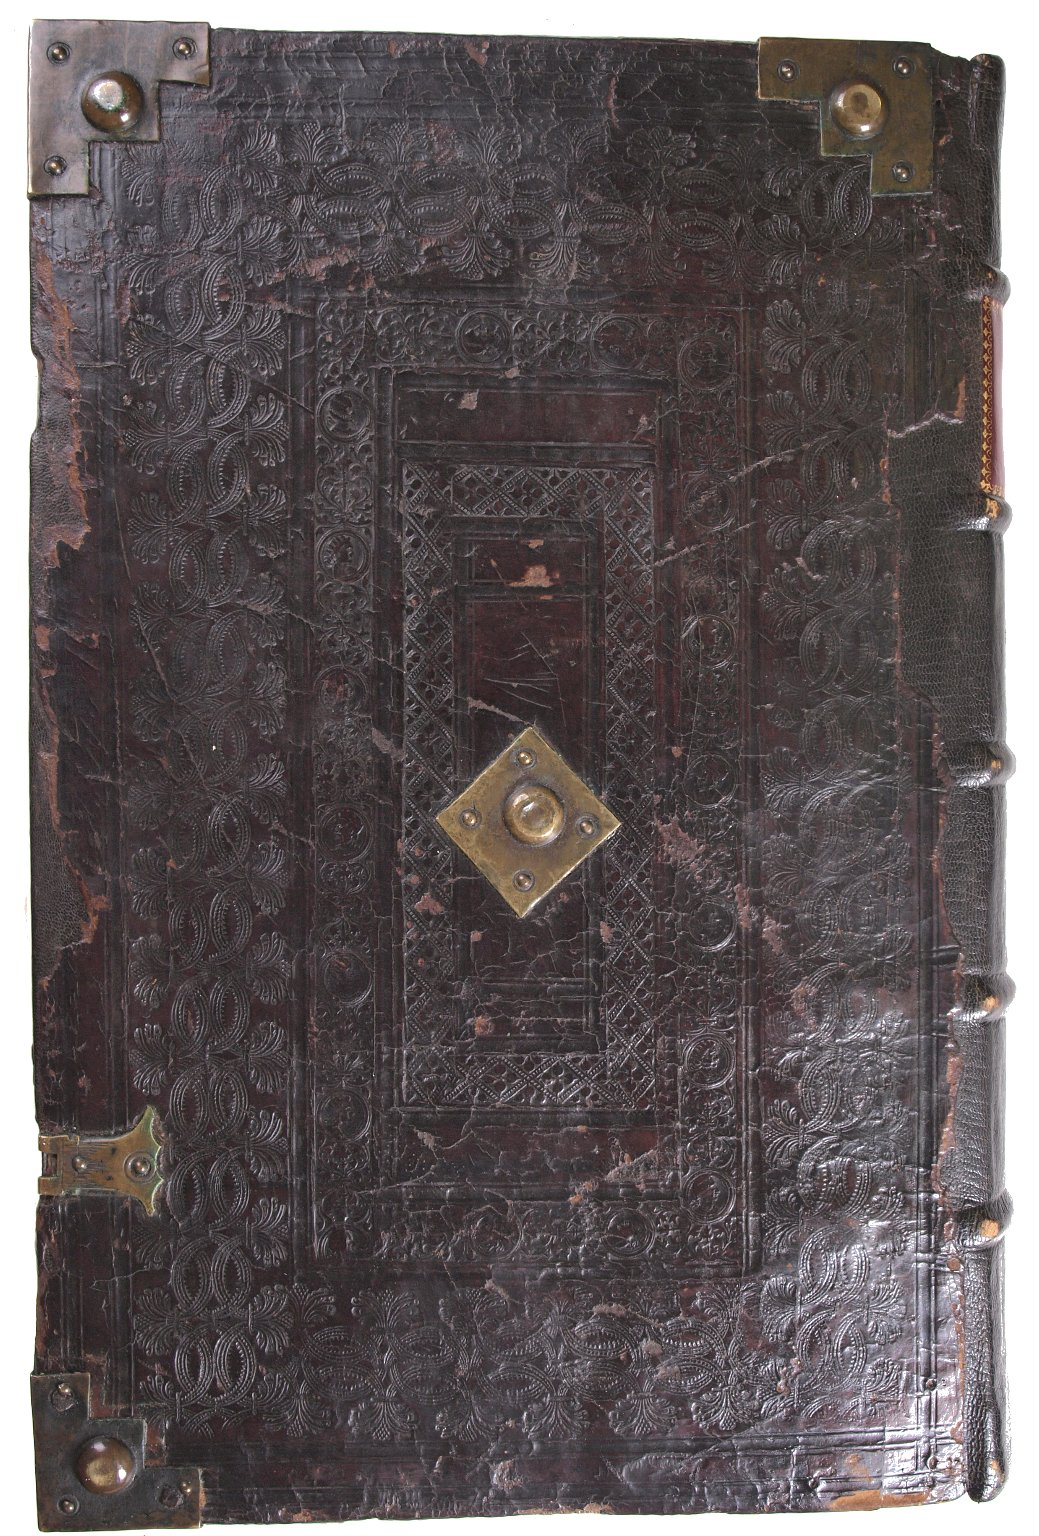 Back cover, STC 11223.2.